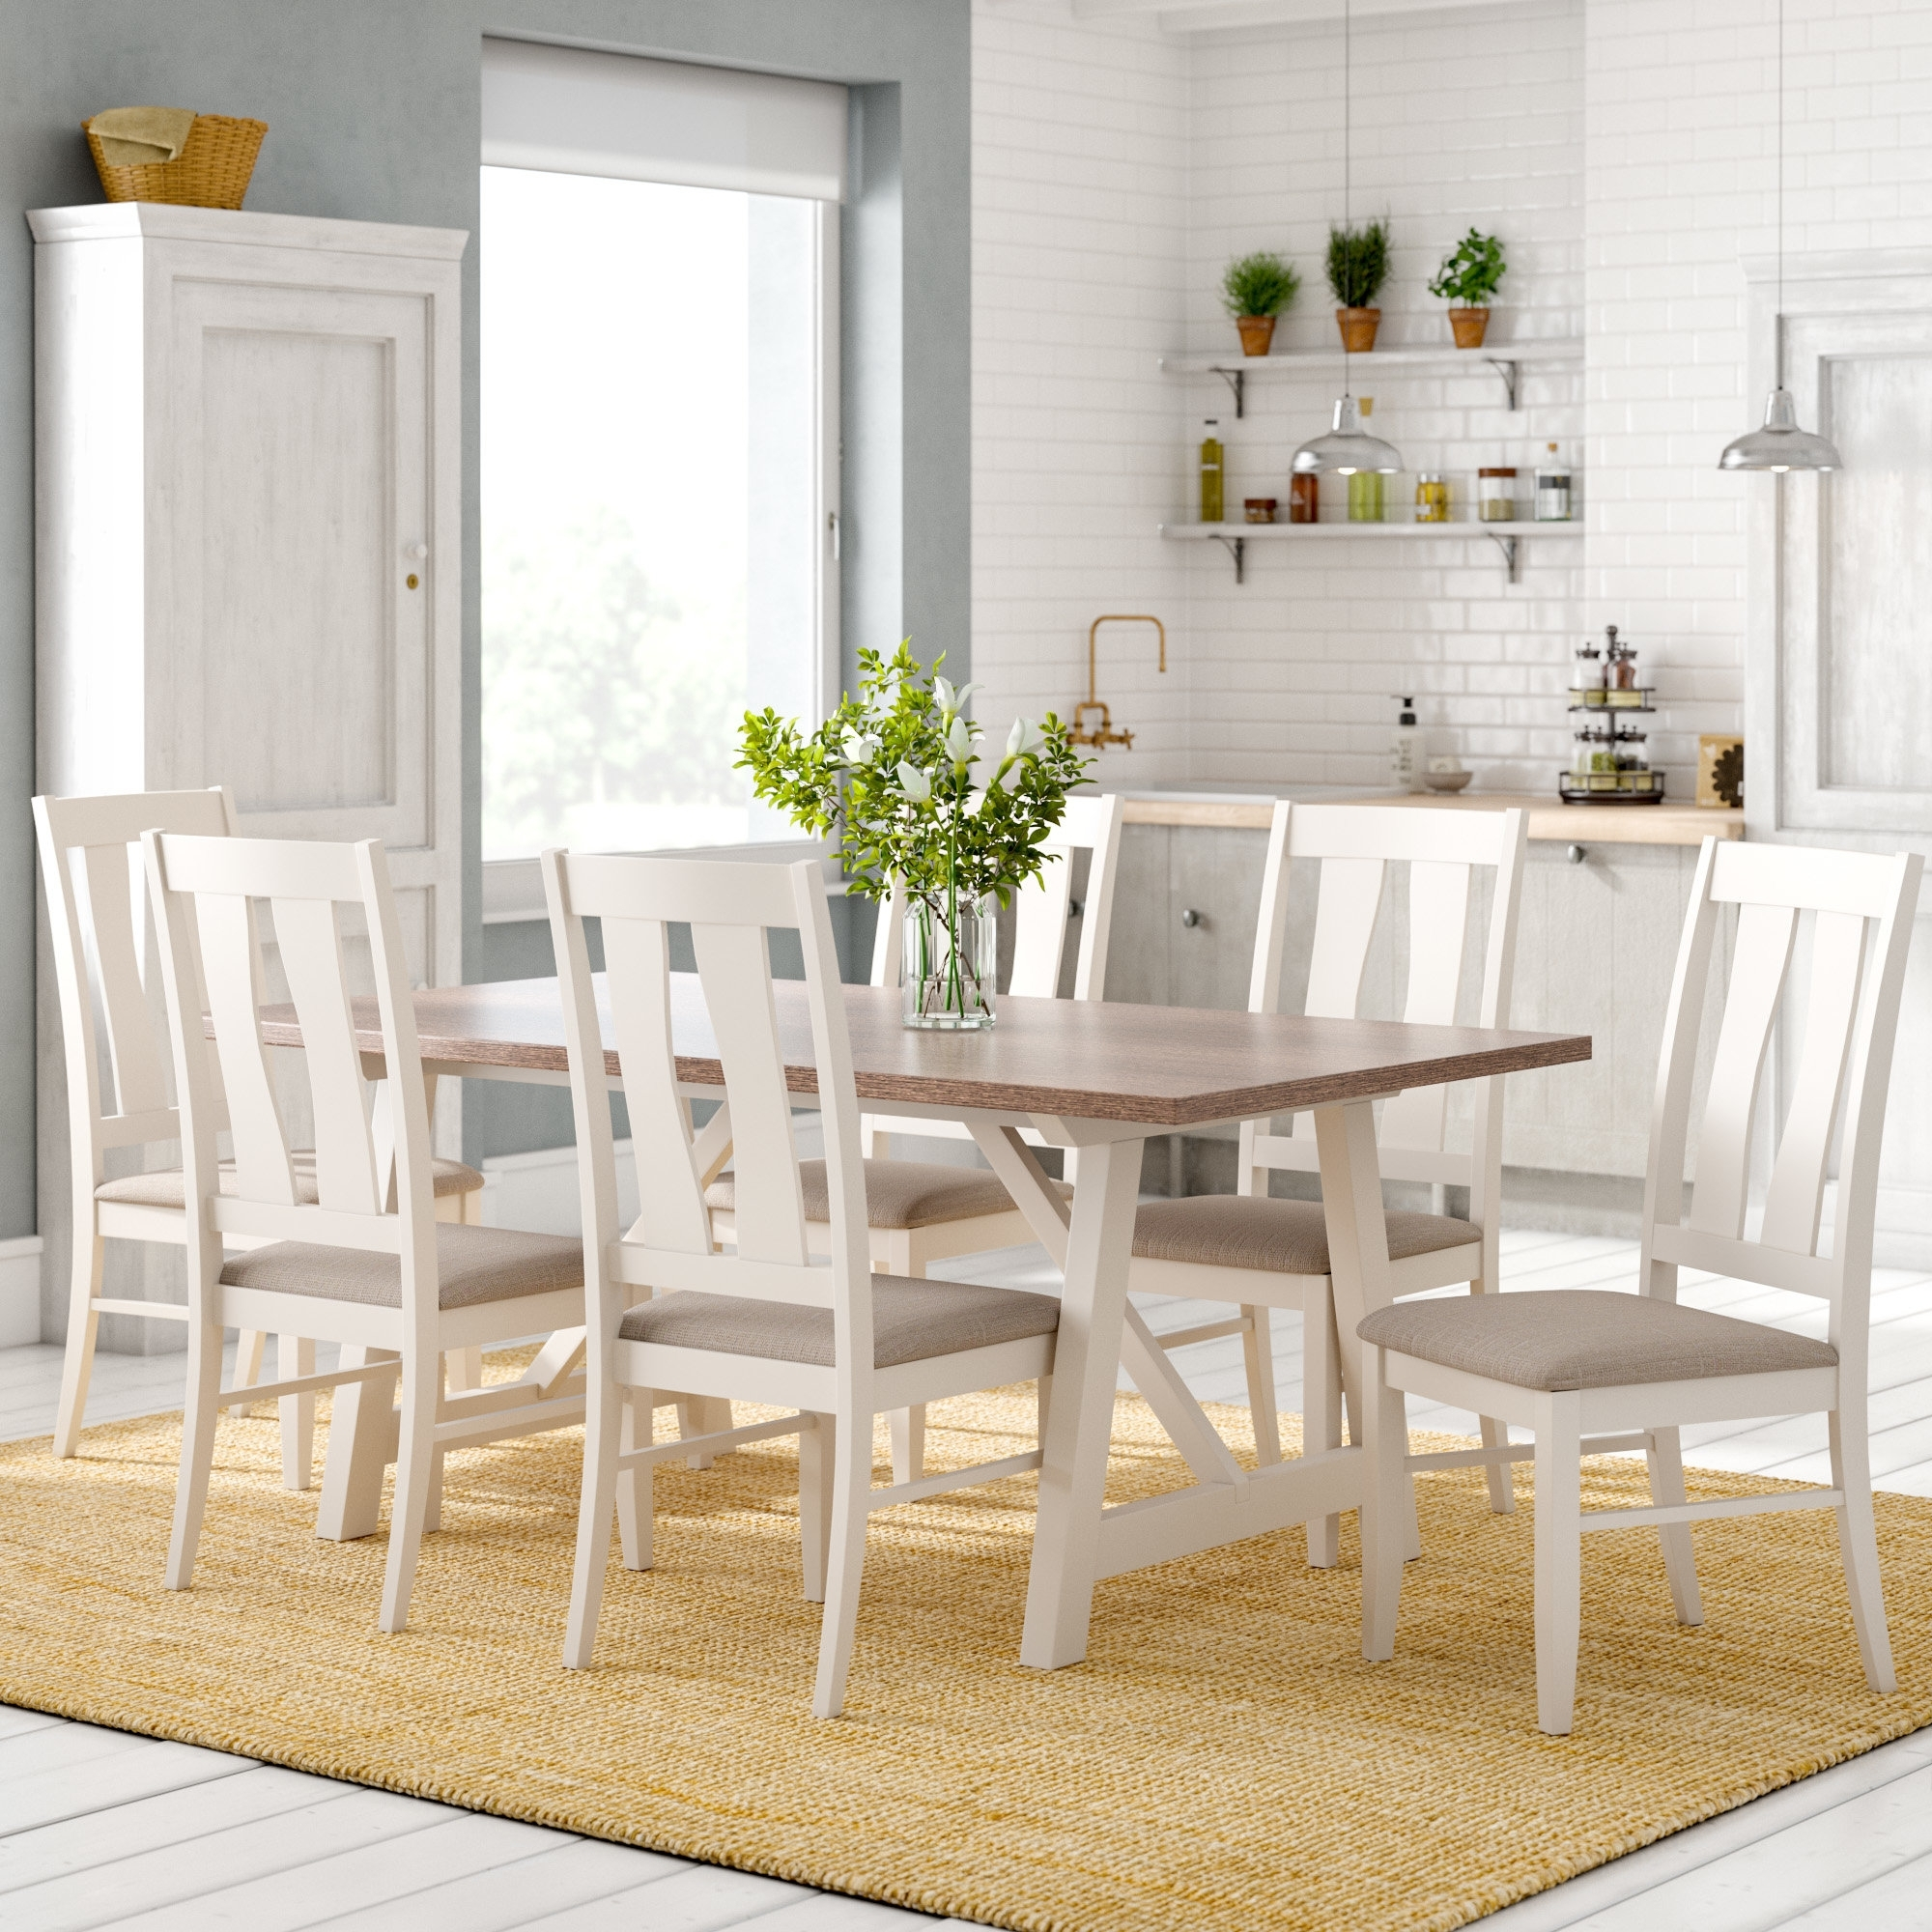 Most Popular Laurel Foundry Lombardy Dining Table And 6 Chairs & Reviews Inside Wood Dining Tables And 6 Chairs (View 23 of 25)